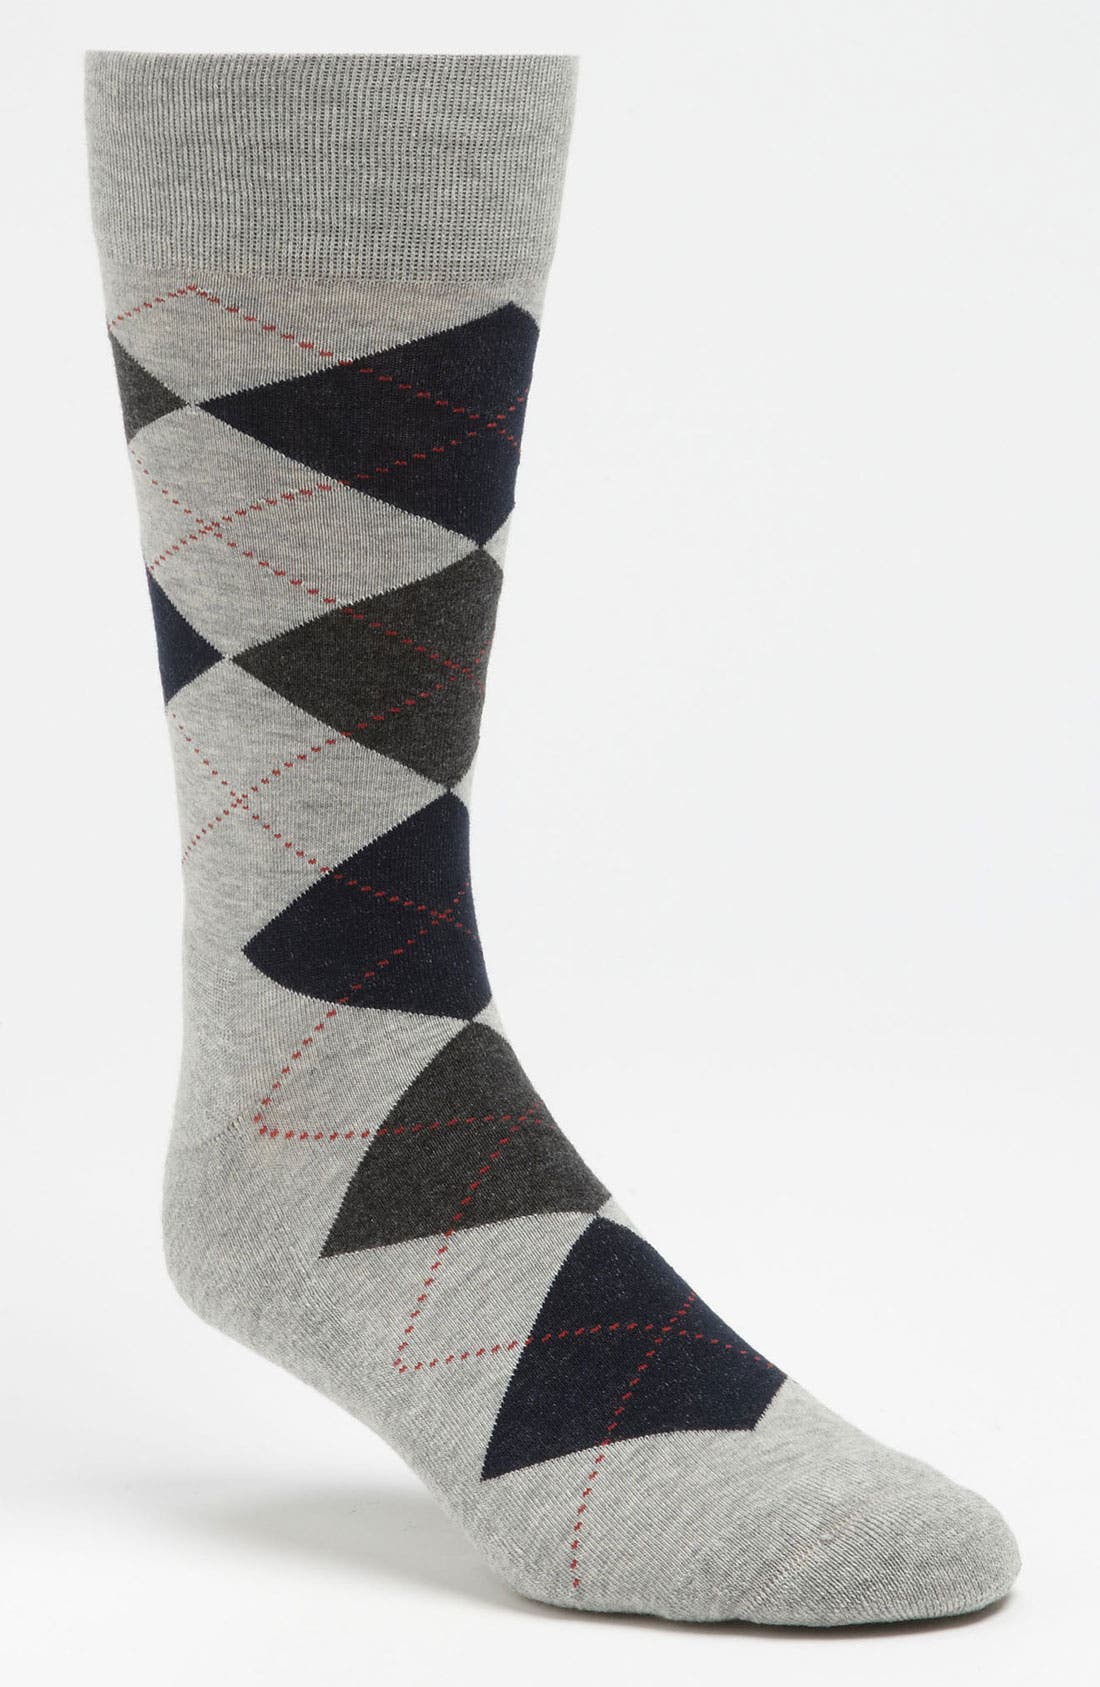 Alternate Image 1 Selected - Nordstrom Cushioned Argyle Socks